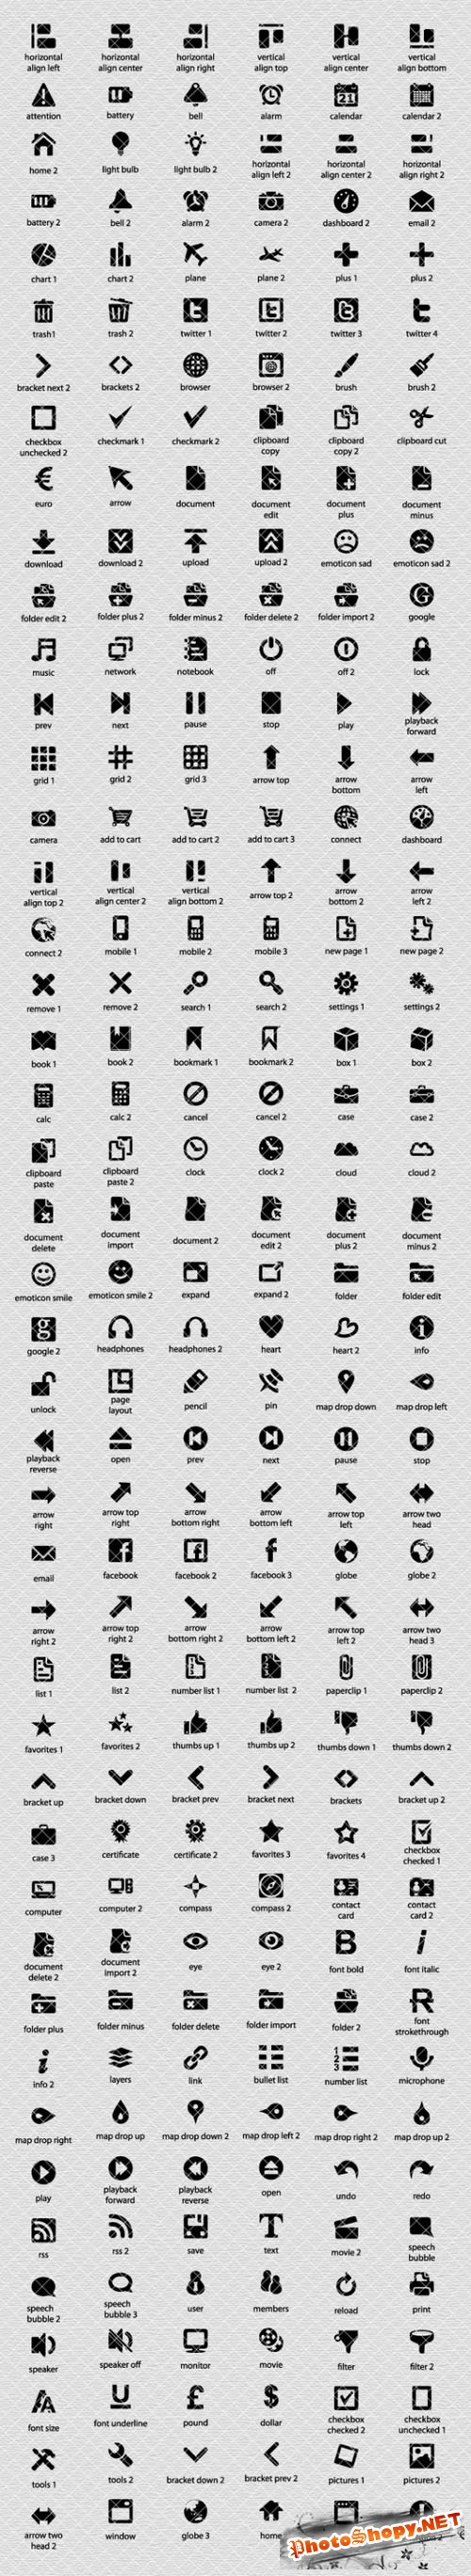 270 Vector Icons